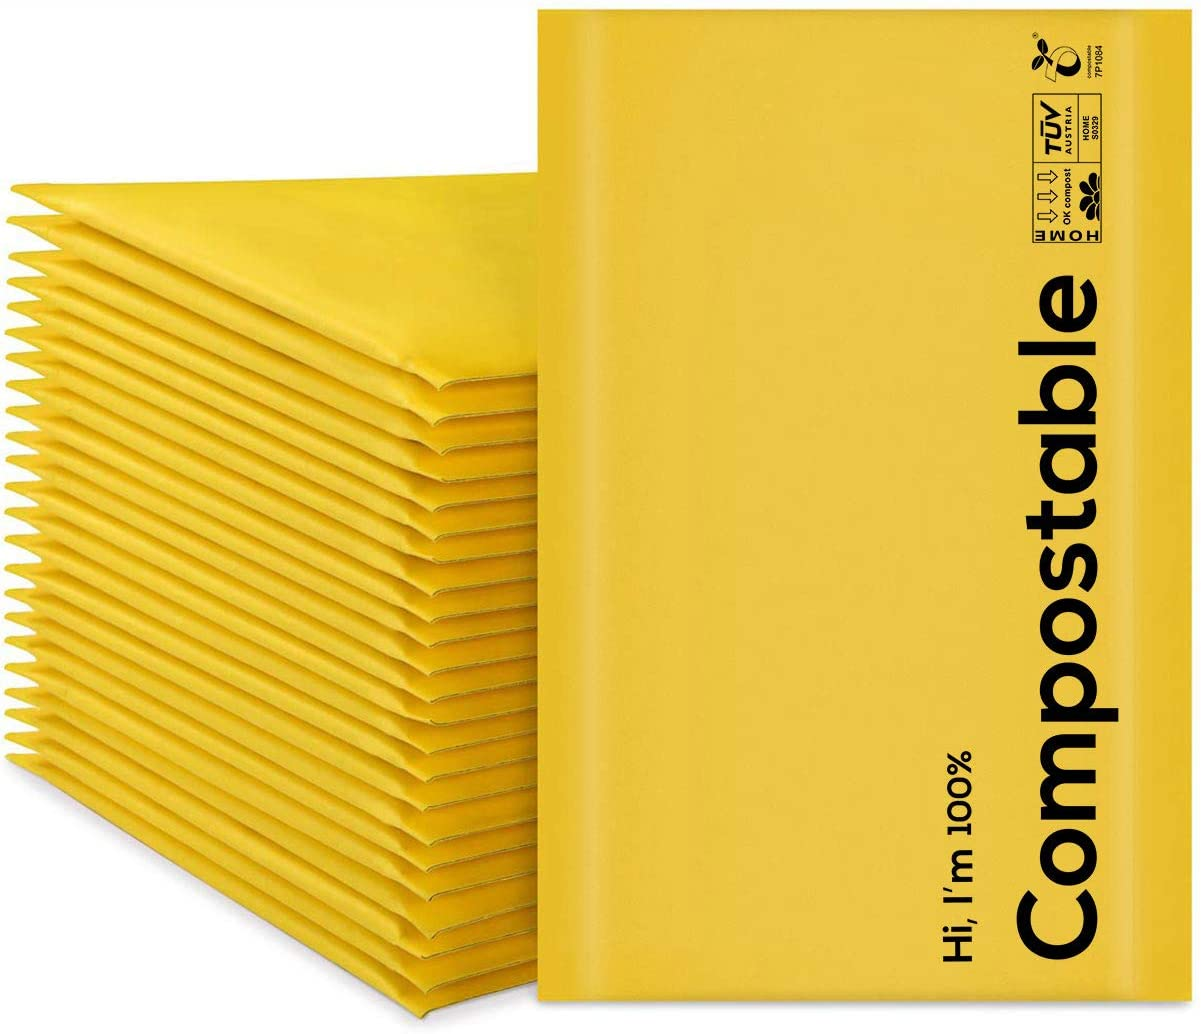 4x8 100% Quantity limited Biodegradable Price reduction Bubble Mailers #000 Count 25 Compostable